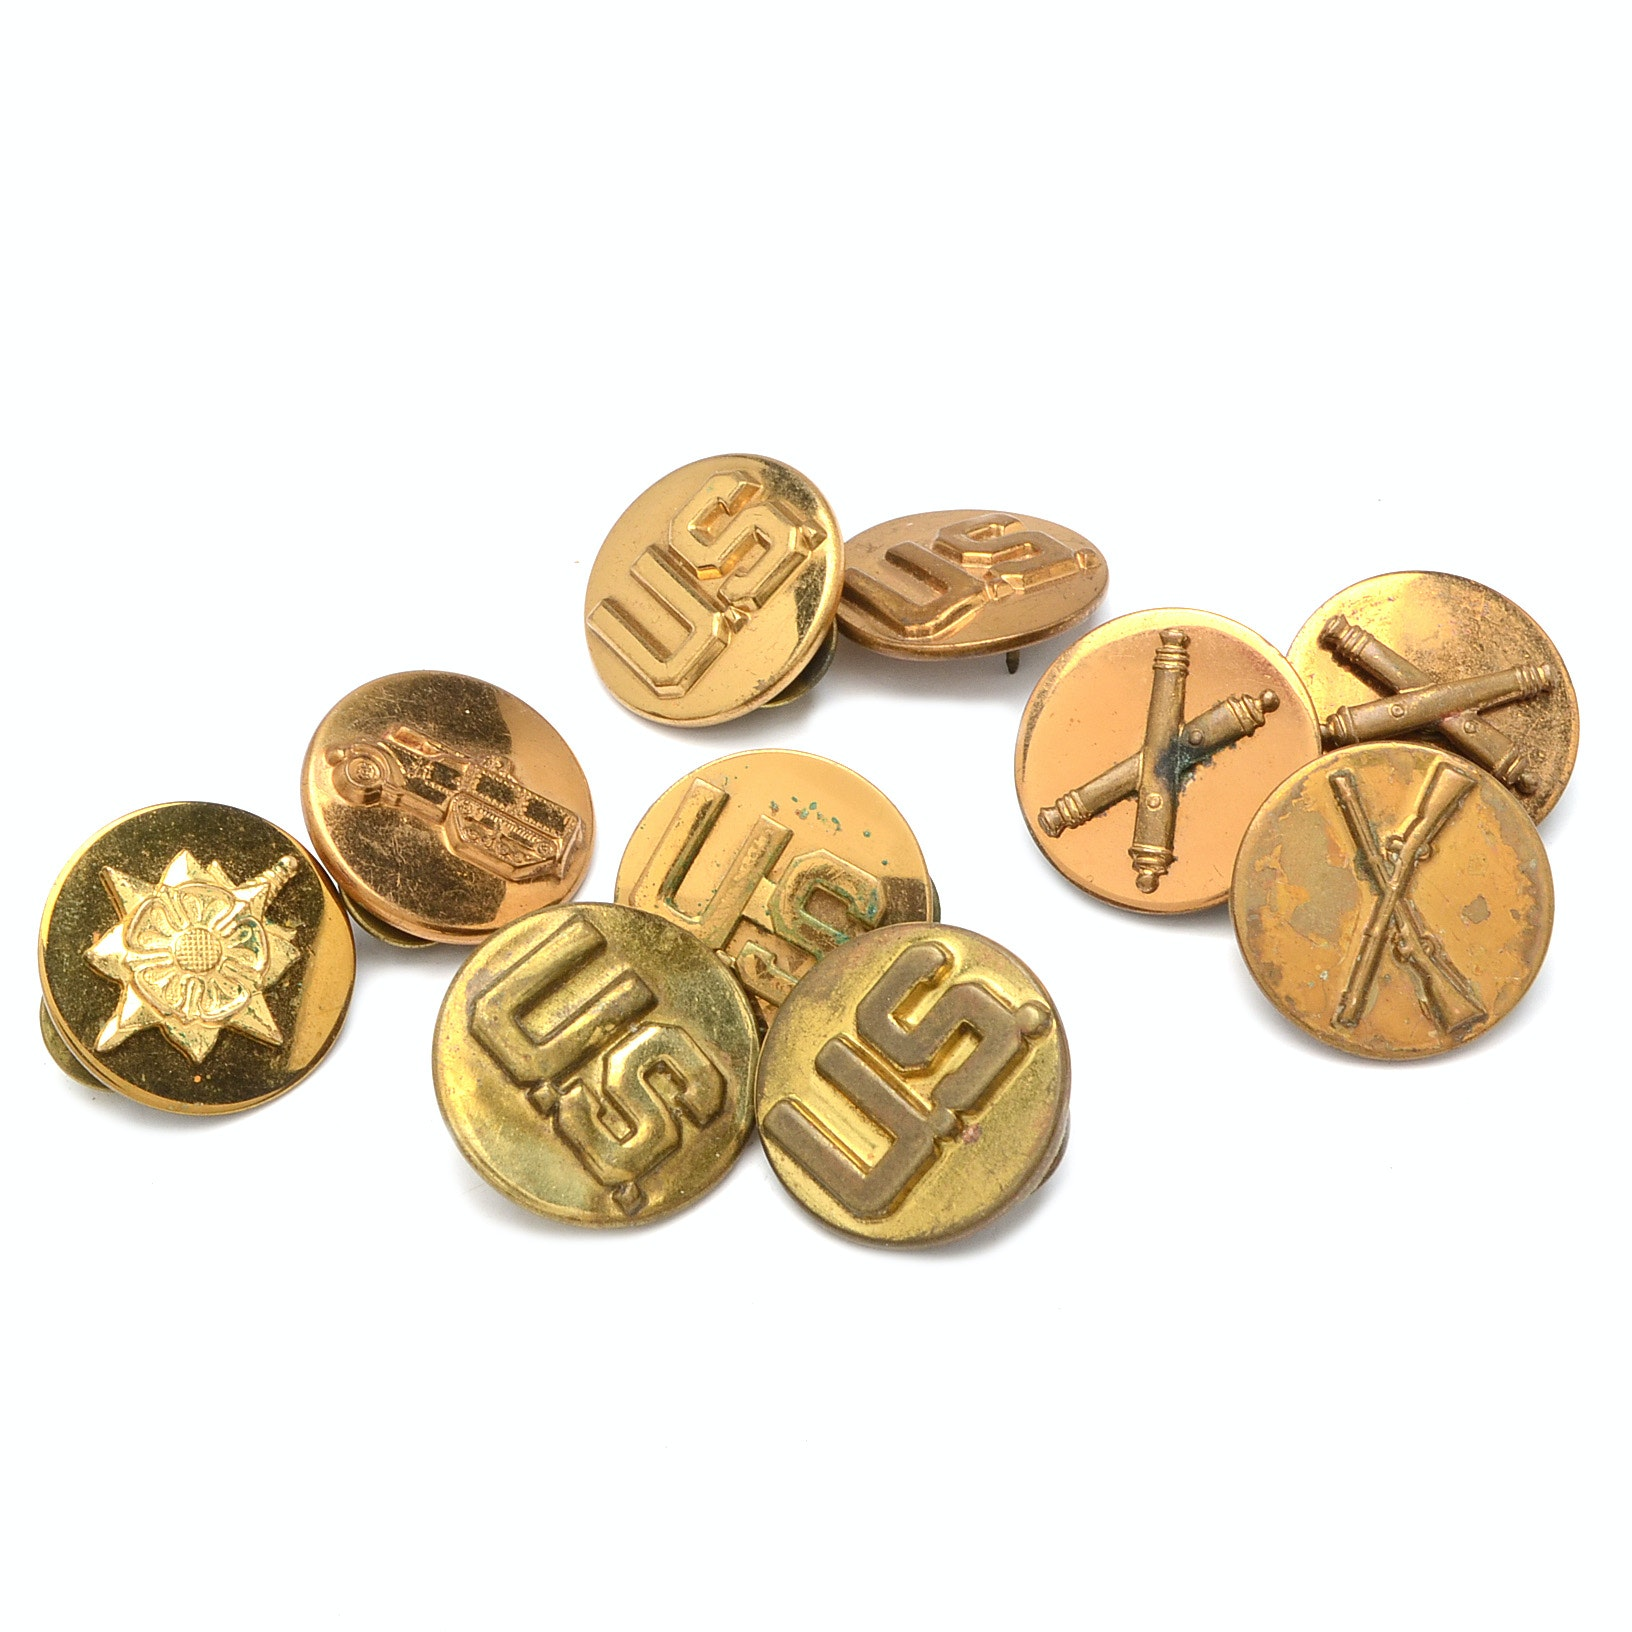 Collection of Ten Brass U.S. Military Pins